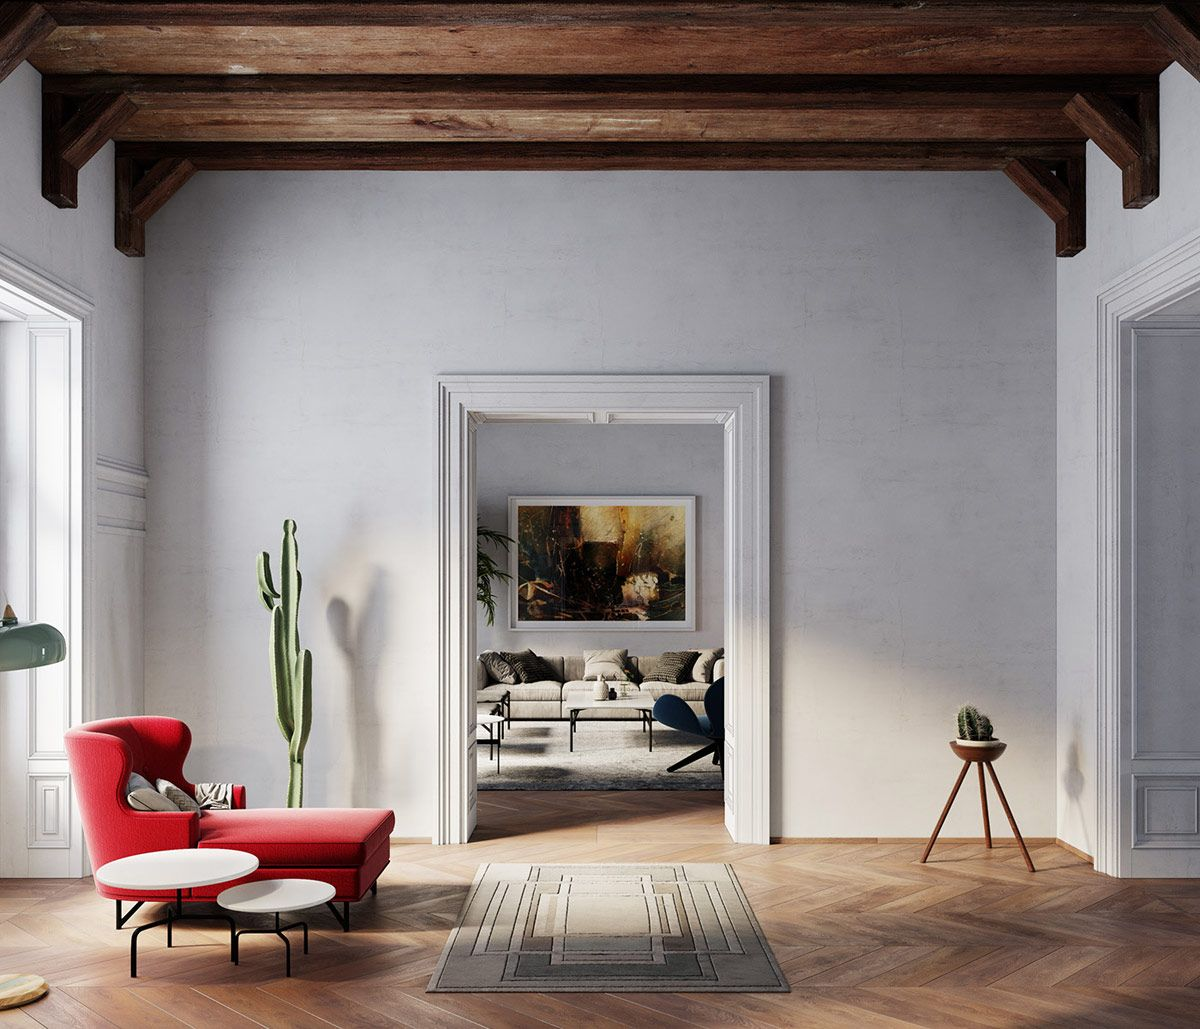 Cohesive Colour Themes, Archways And Exposed Wooden Beams ...